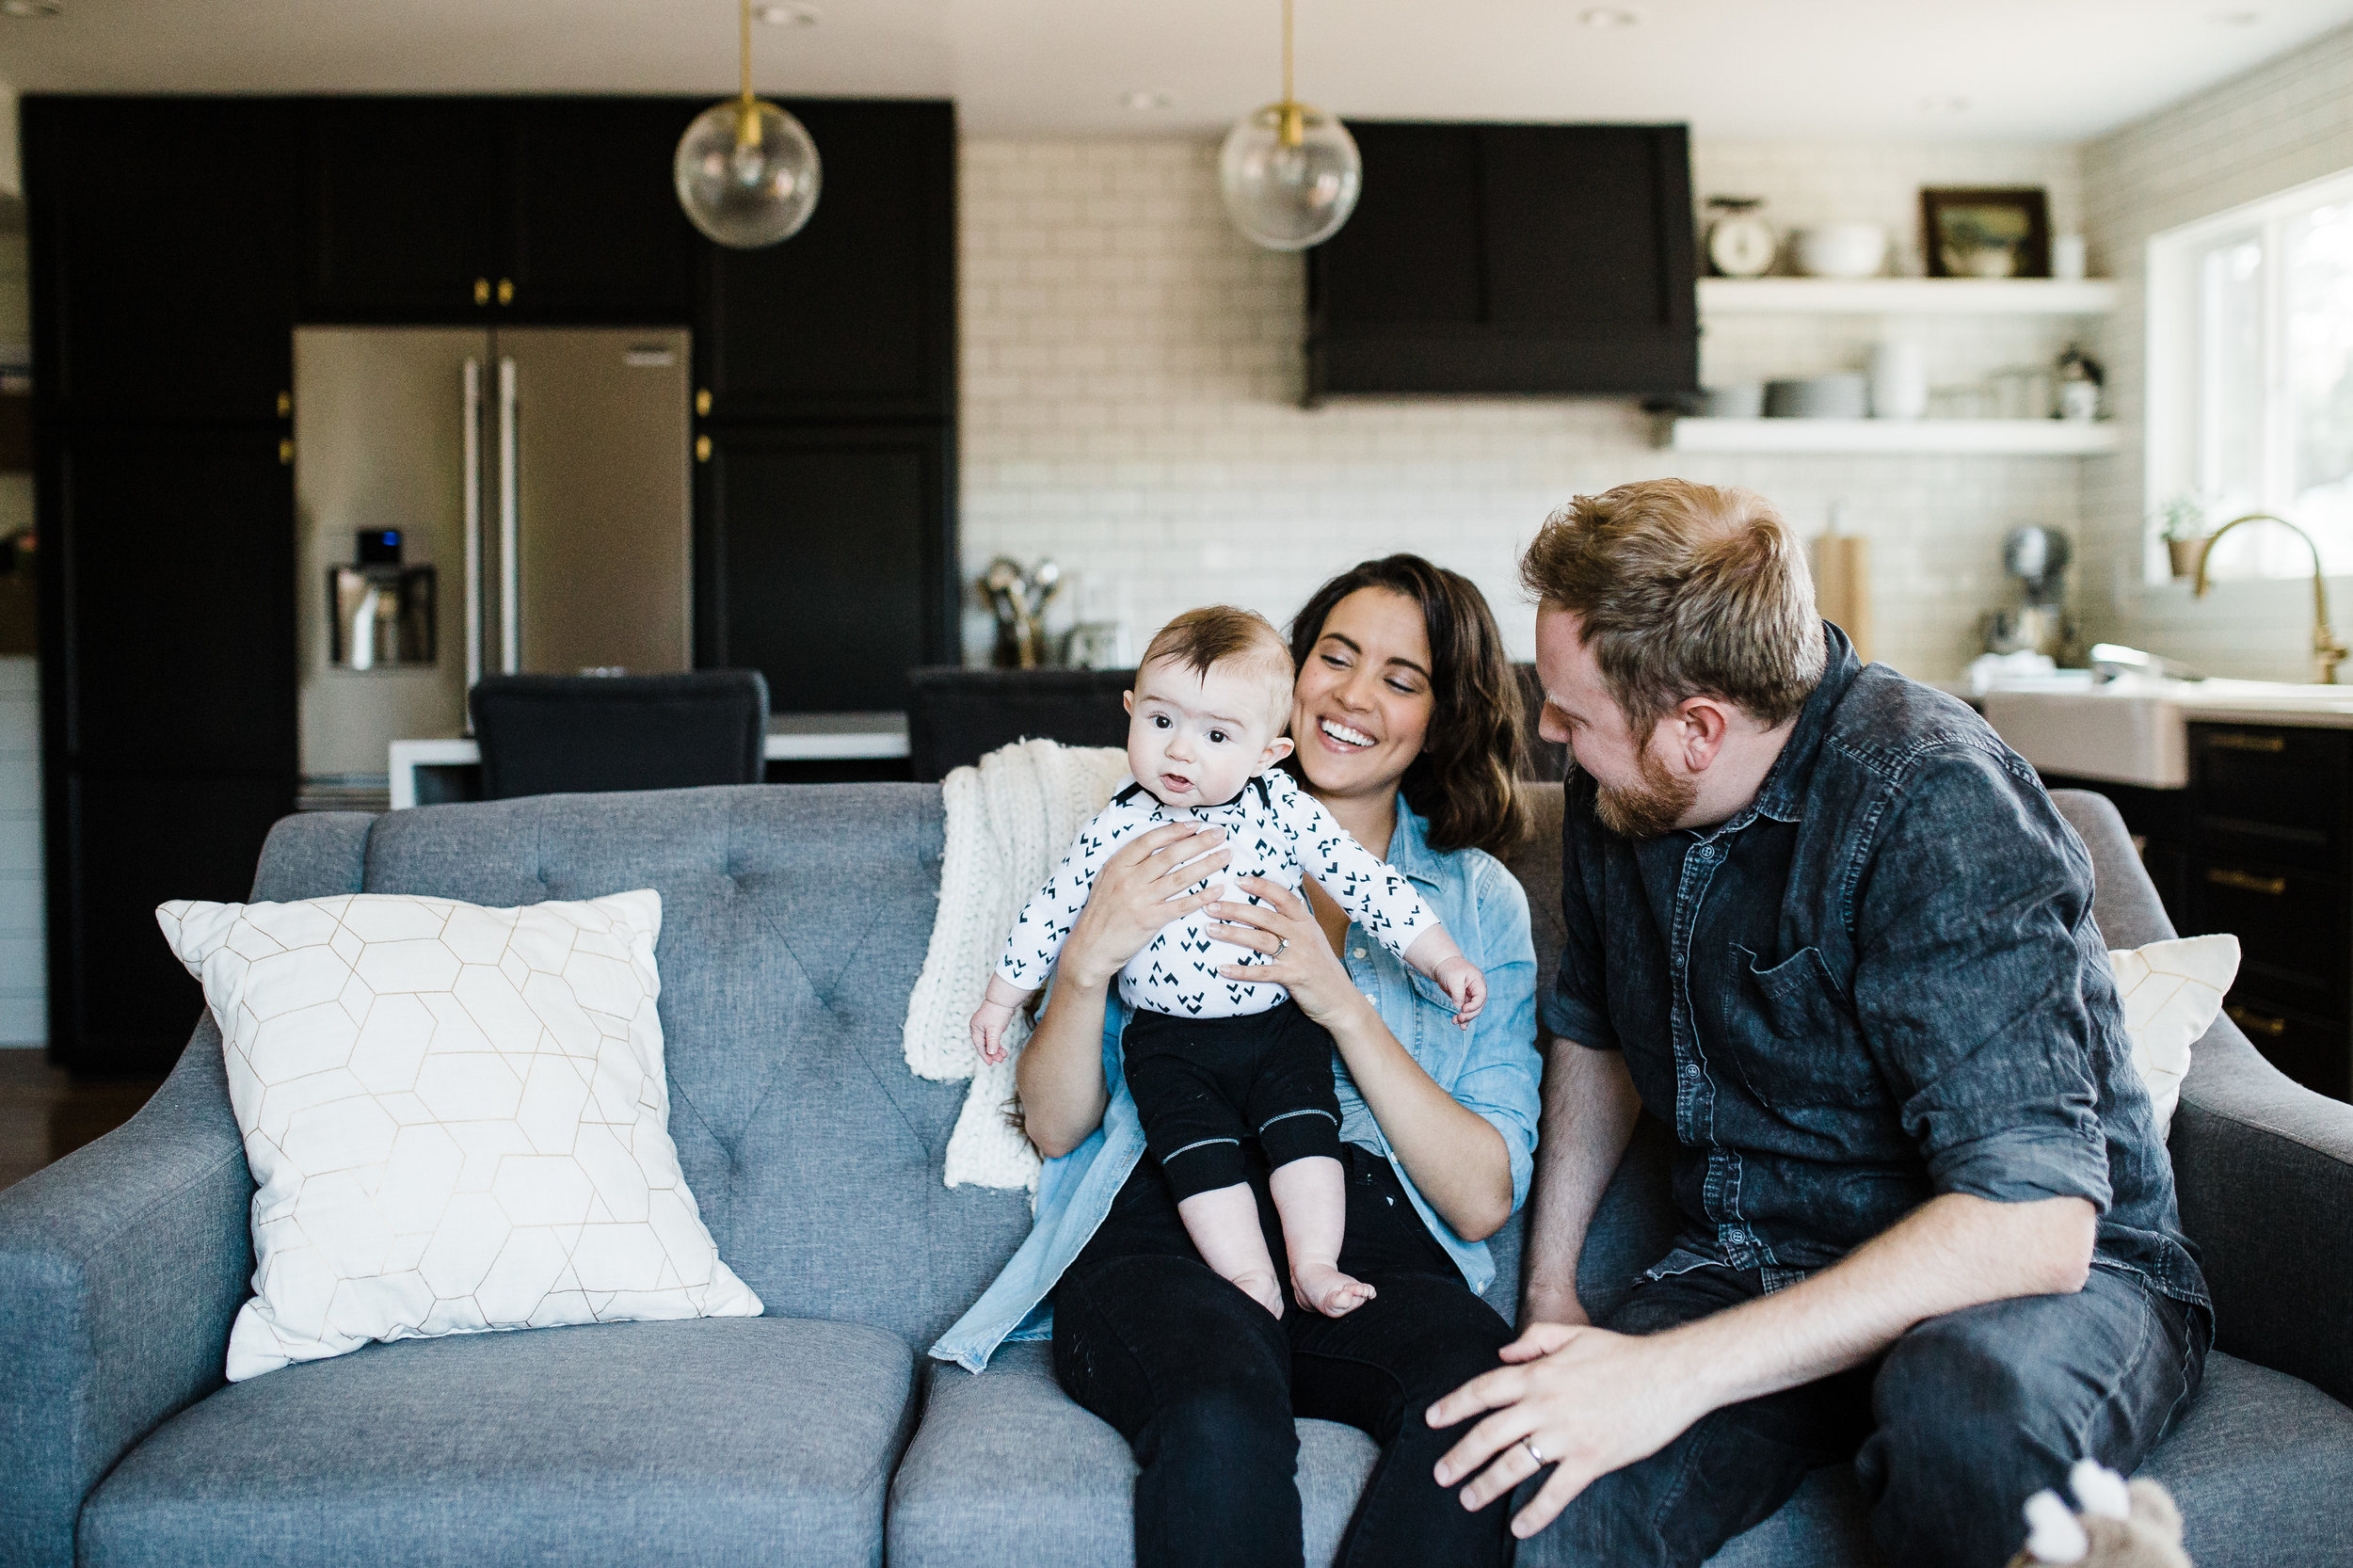 Parents and baby in home lifestyle photo session by Lily Jean Photography